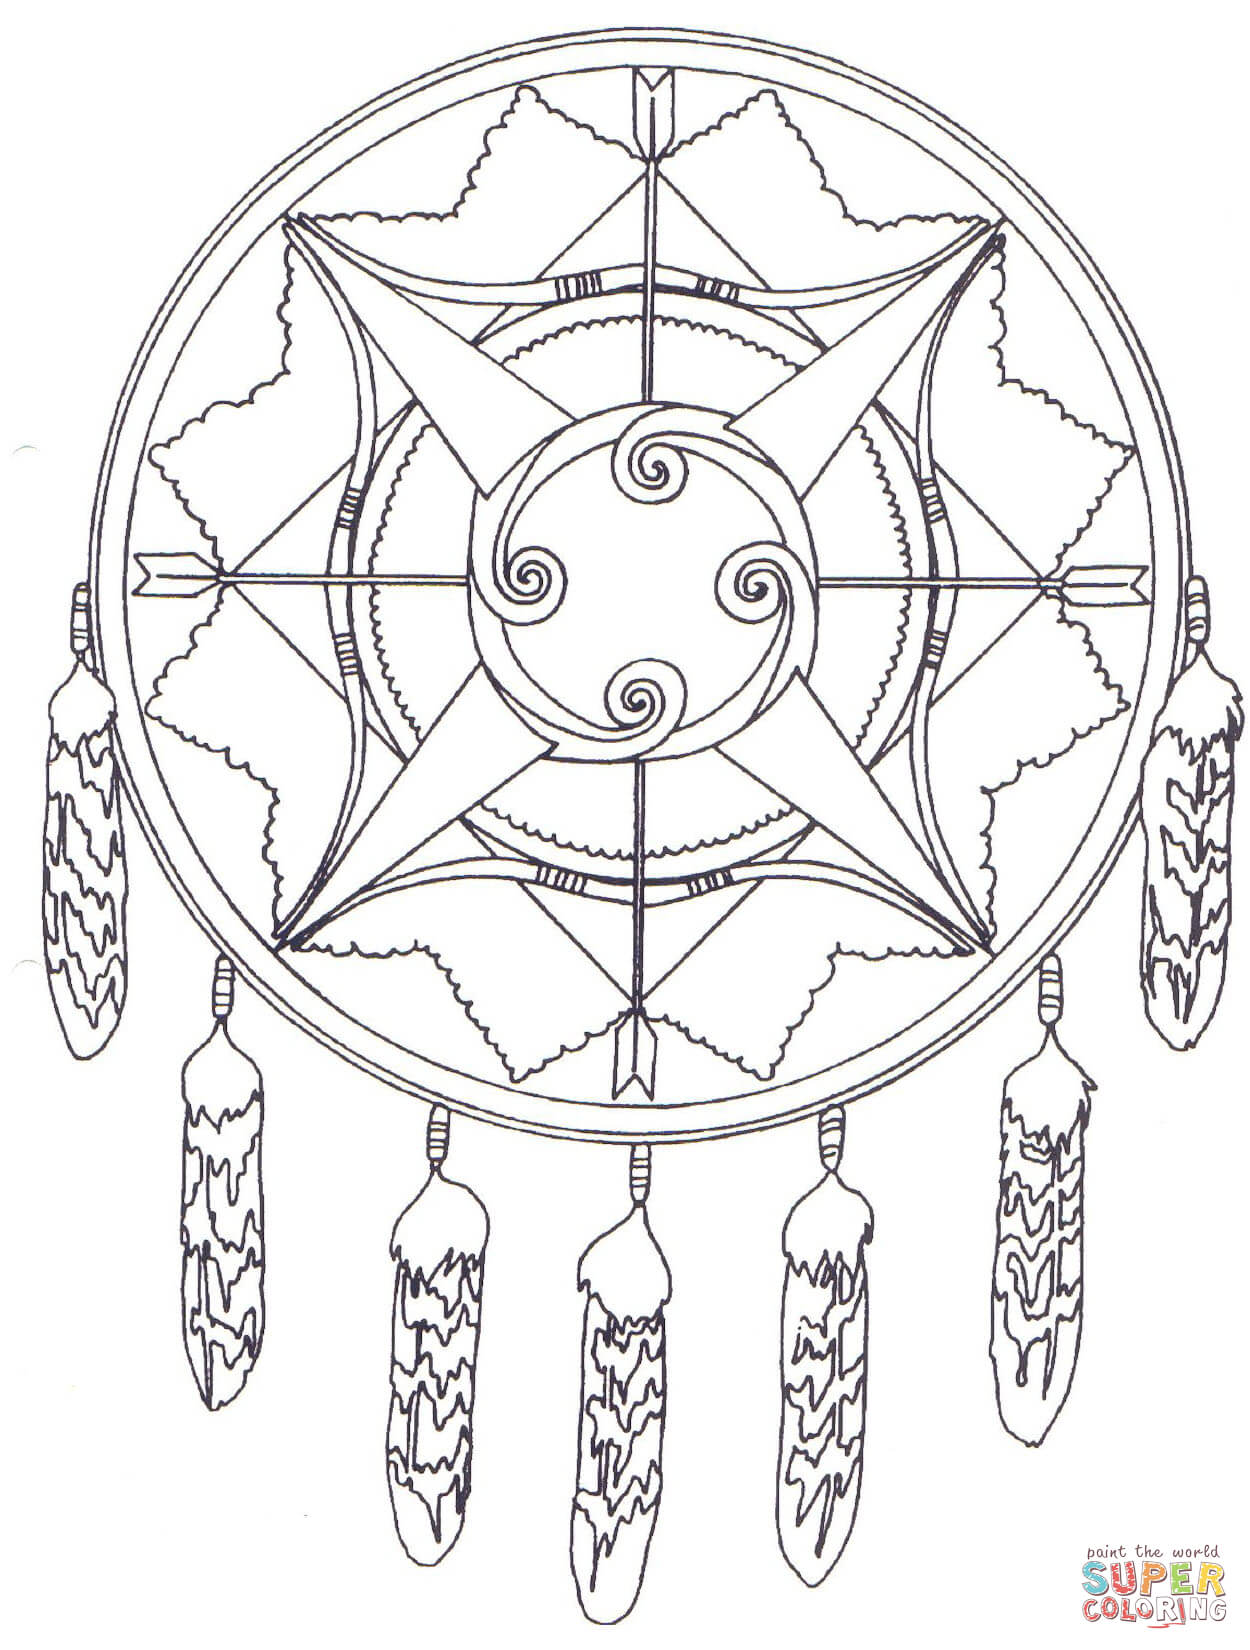 Dreamcatcher coloring #1, Download drawings